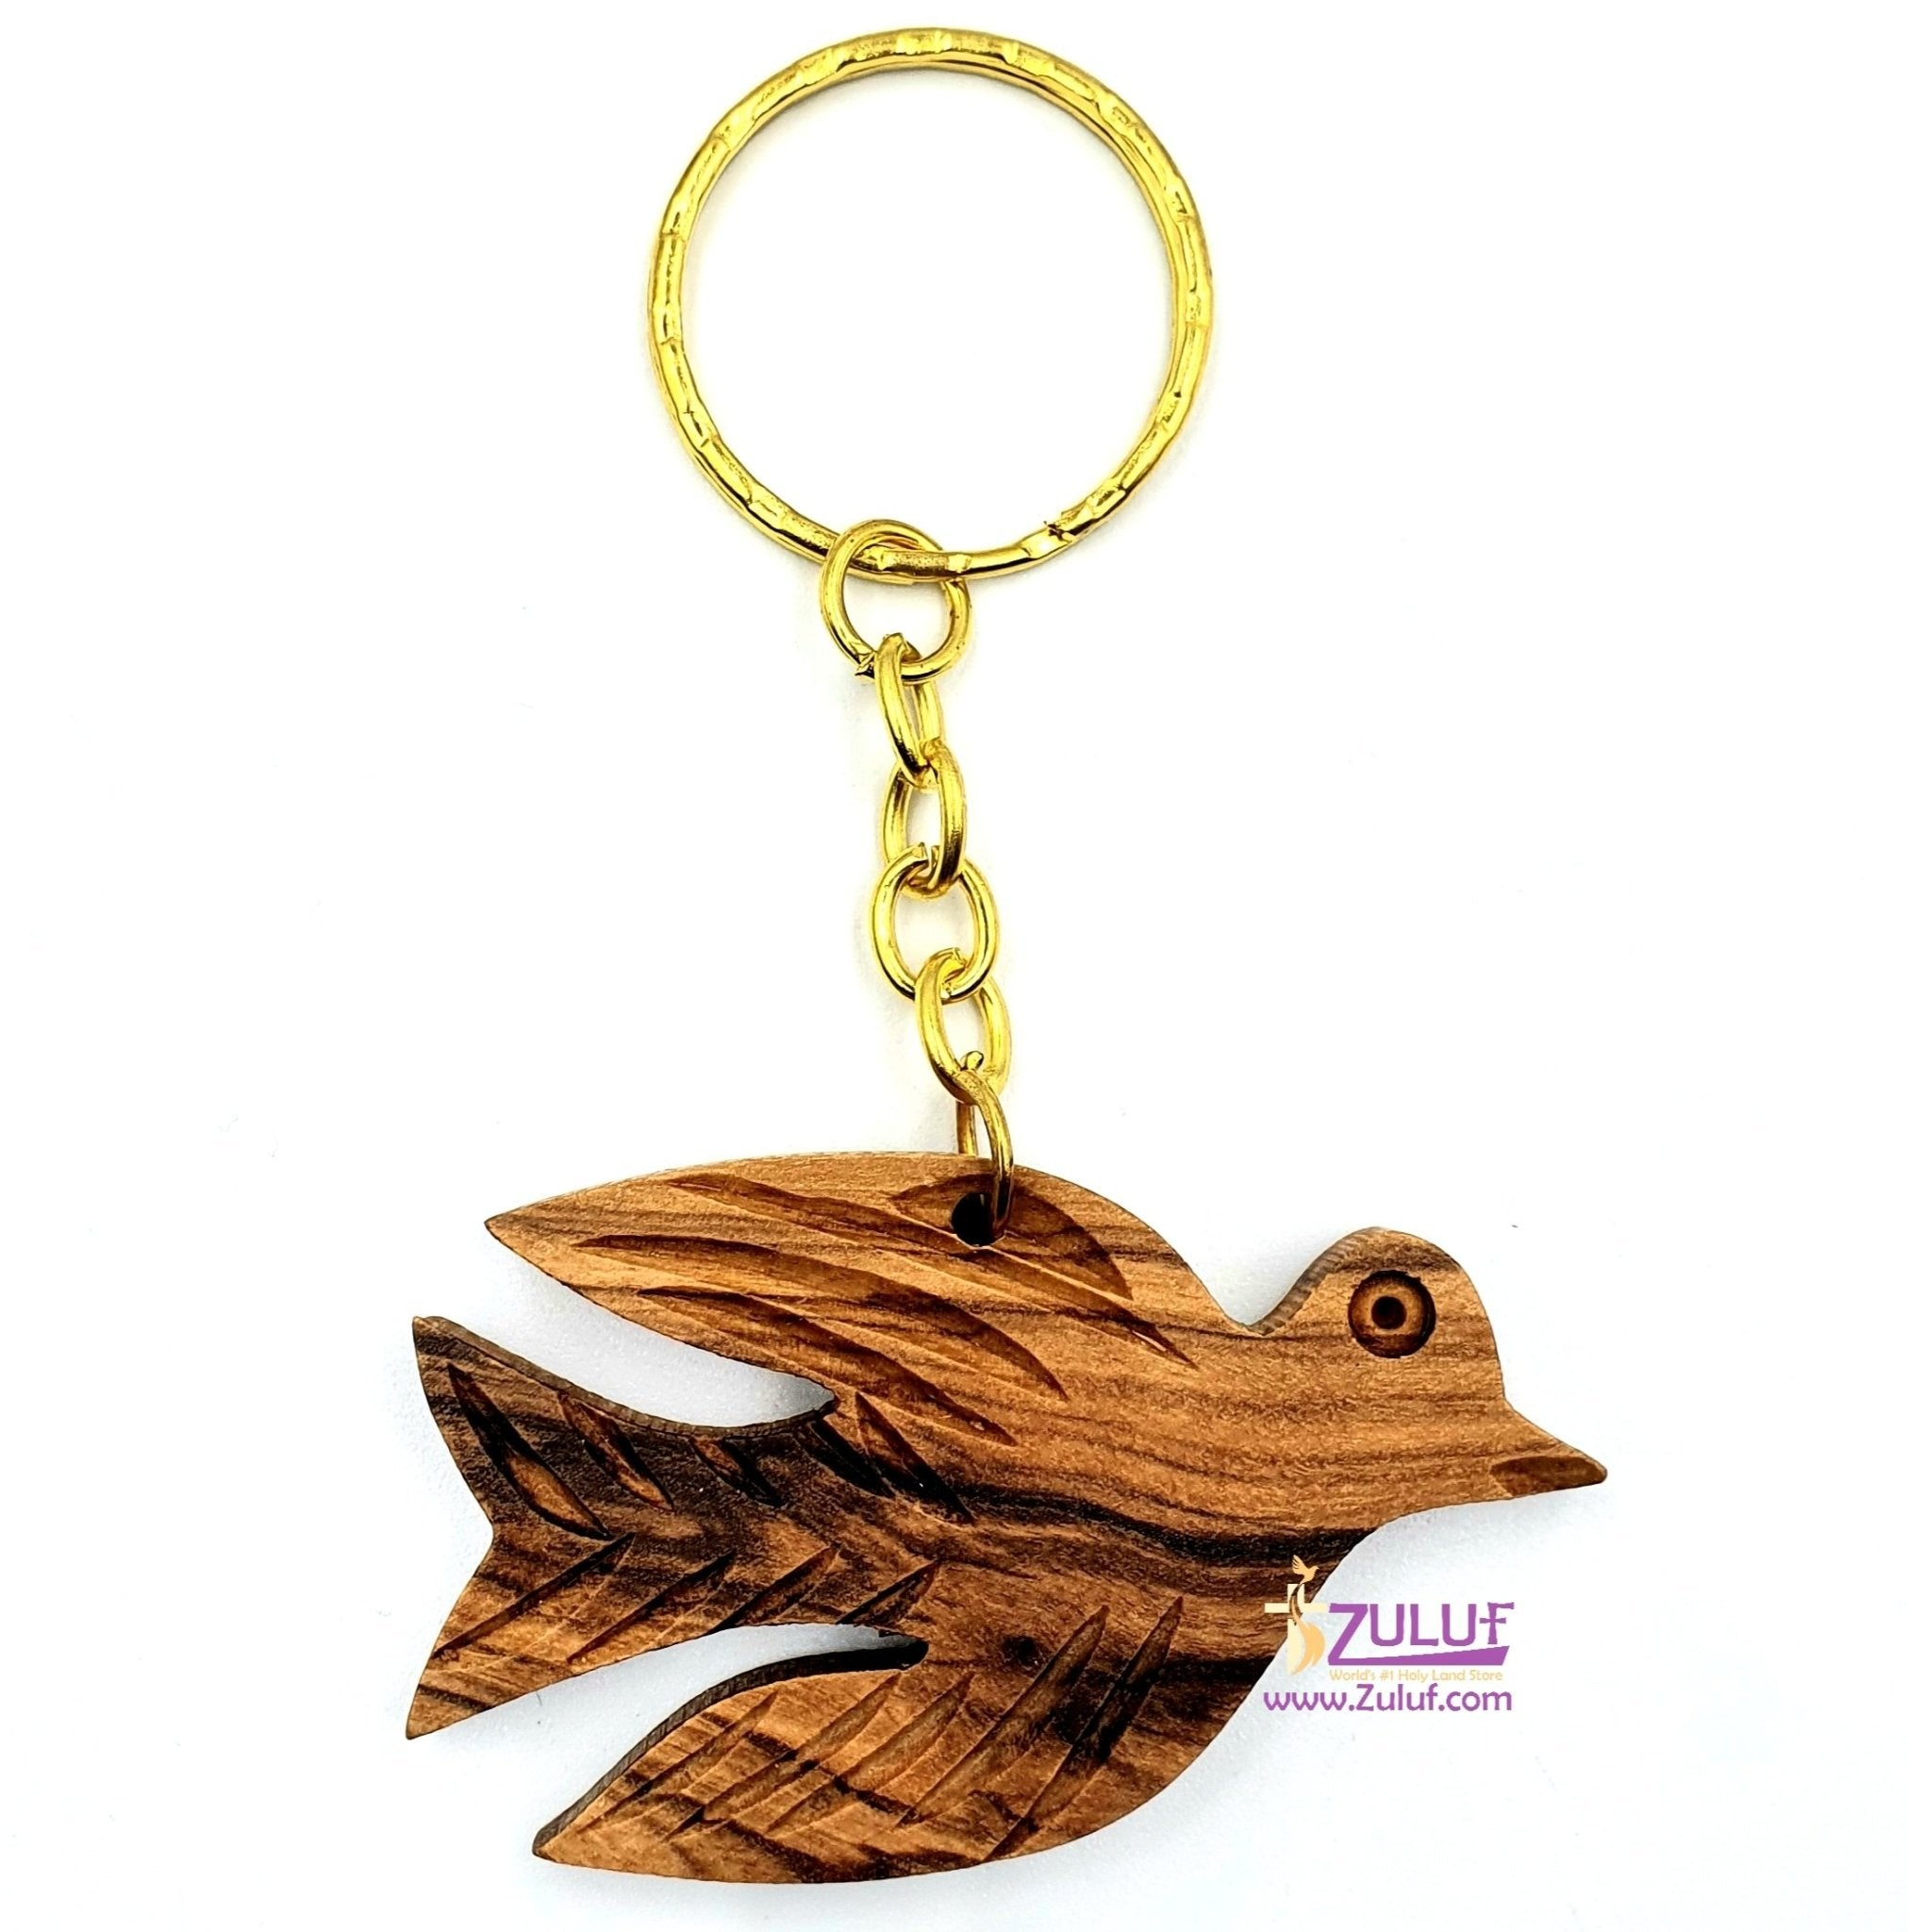 Olive wood hand made peace Dove bethlehem keychain KC216 - Zuluf